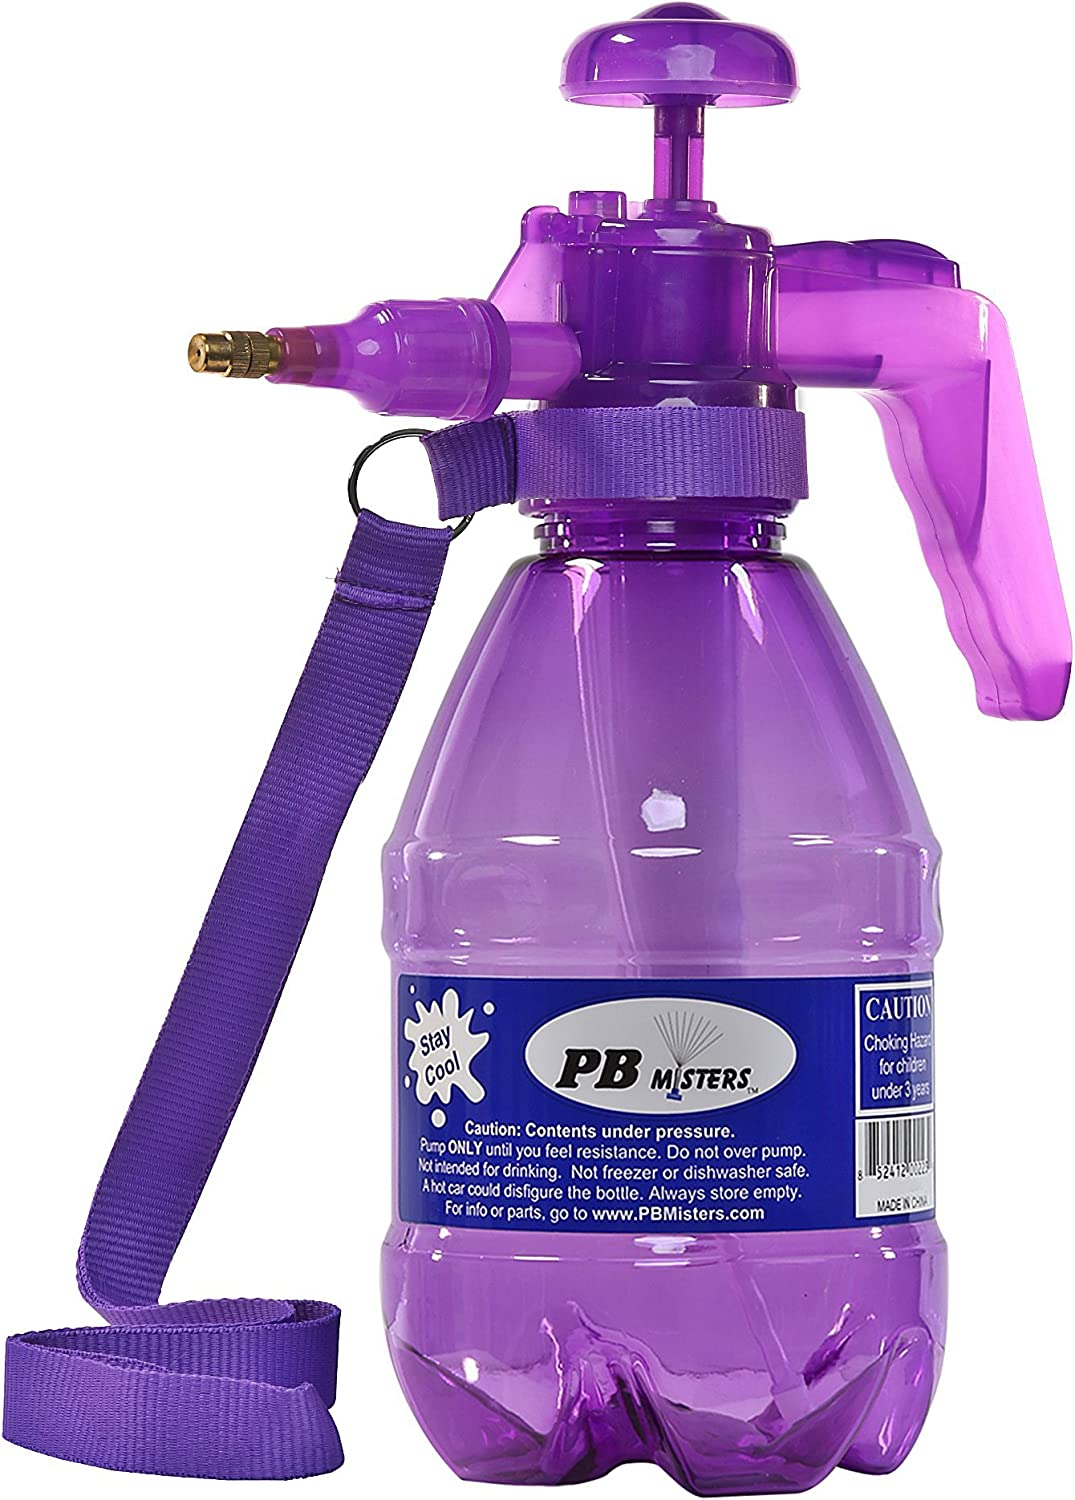 PB Misters with Pressure Relief Handle